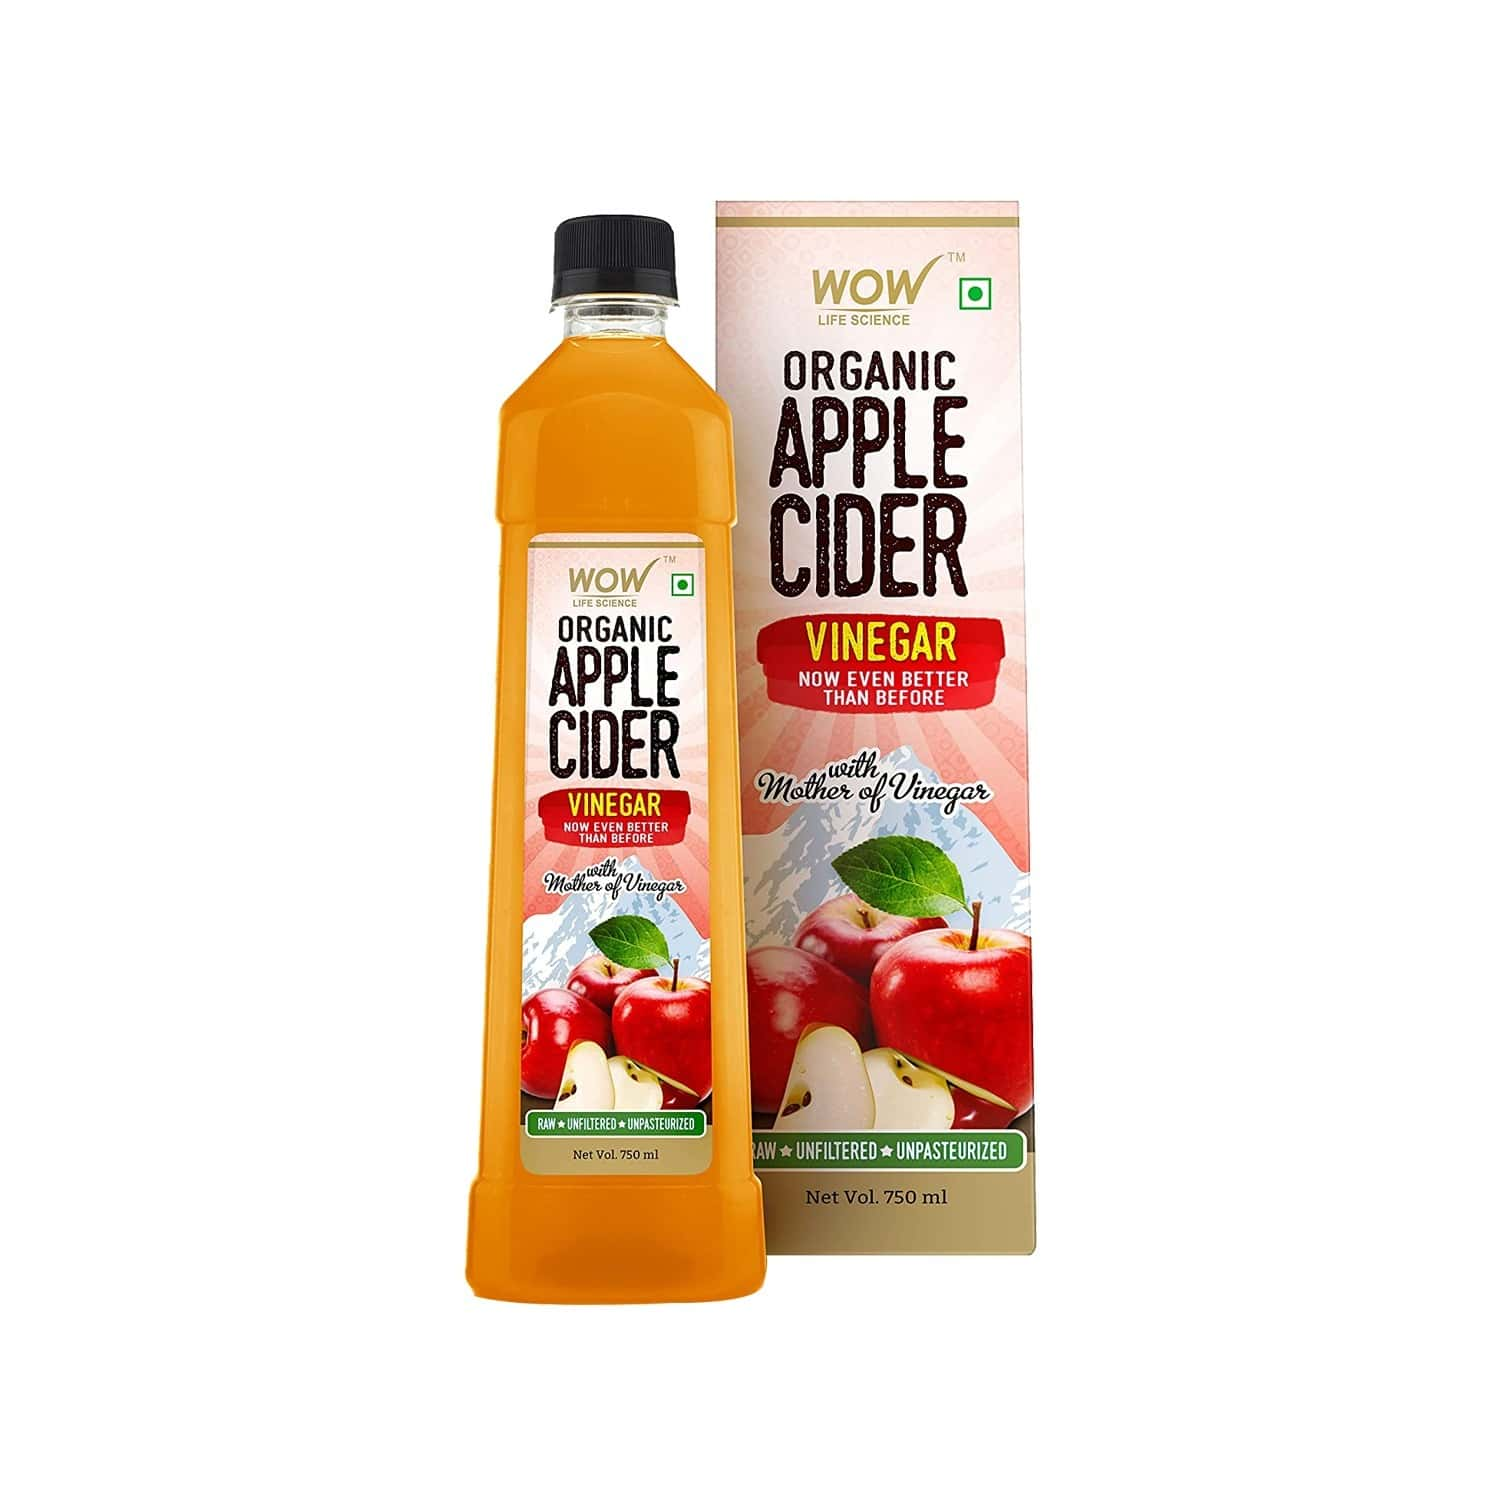 Wow Life Science Organic Apple Cider Vinegar - 750 Ml